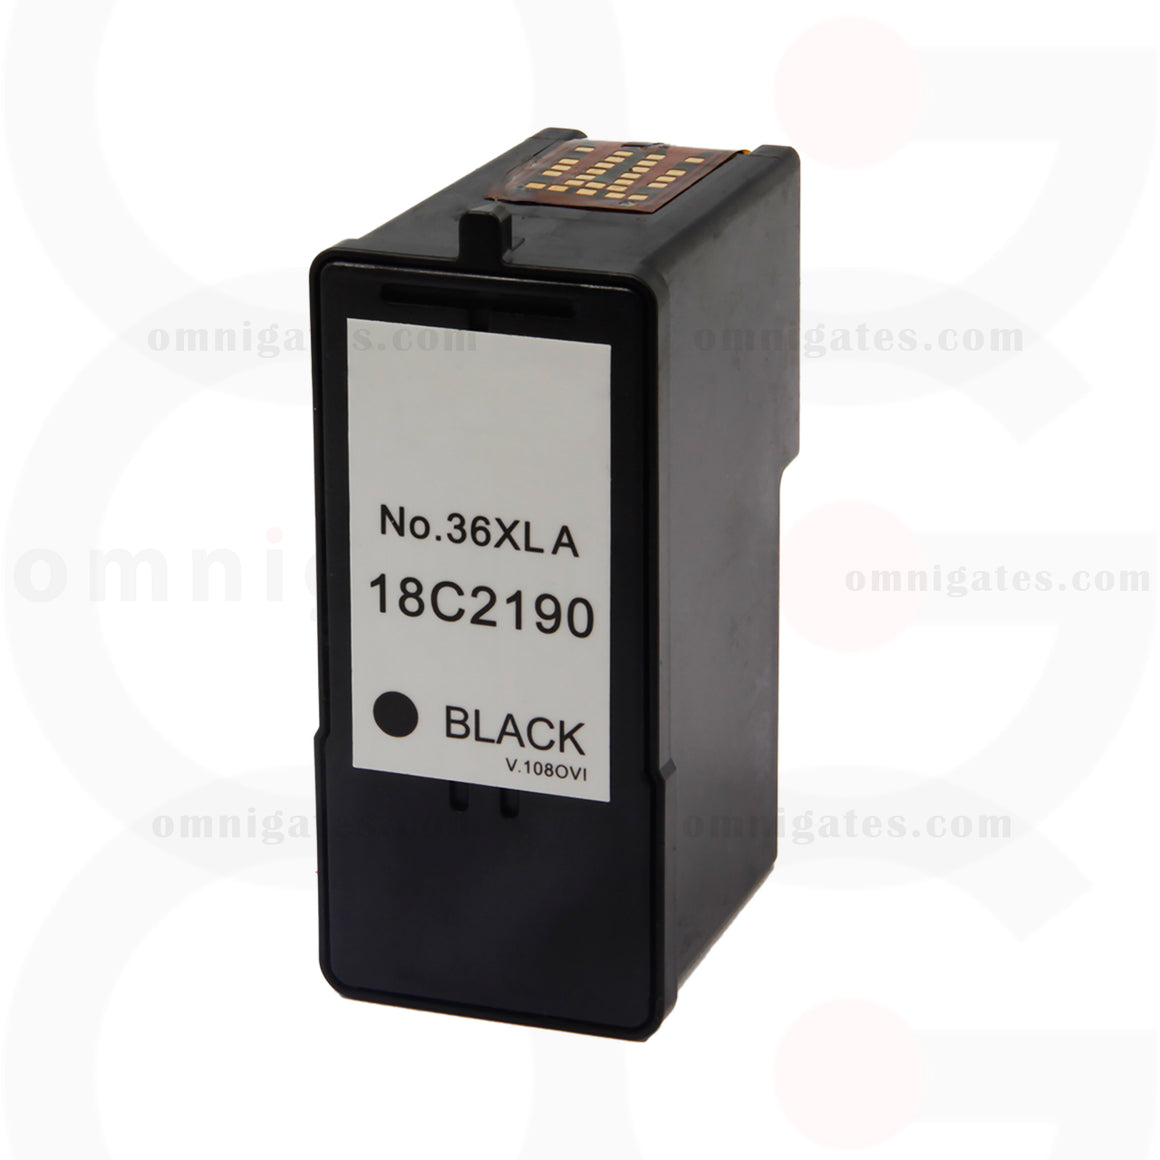 Black OGP Remanufactured Lexmark 18C2190 Inkjet Cartridge